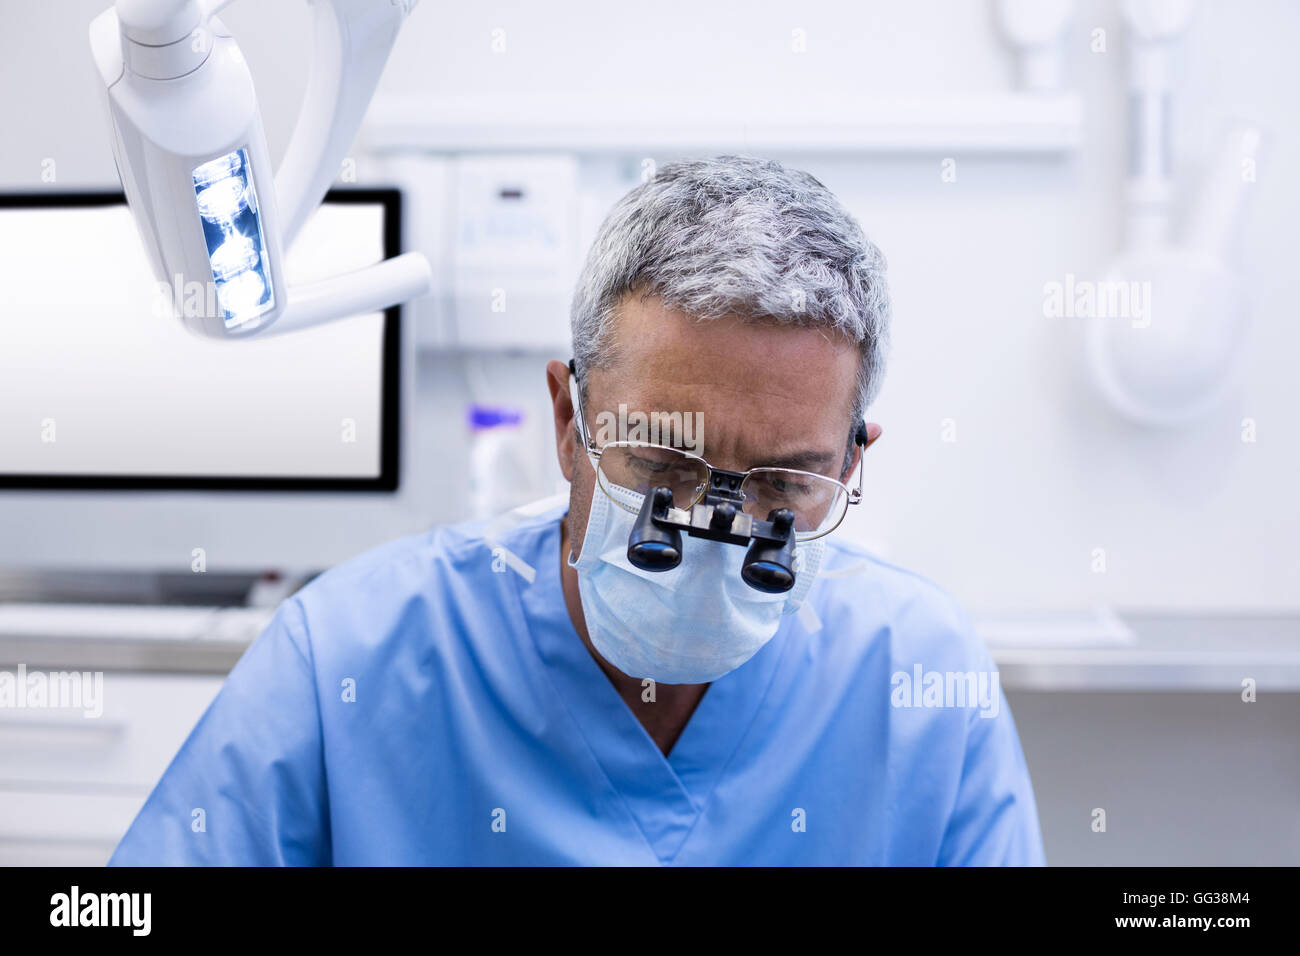 Dentist with surgical loupes - Stock Image